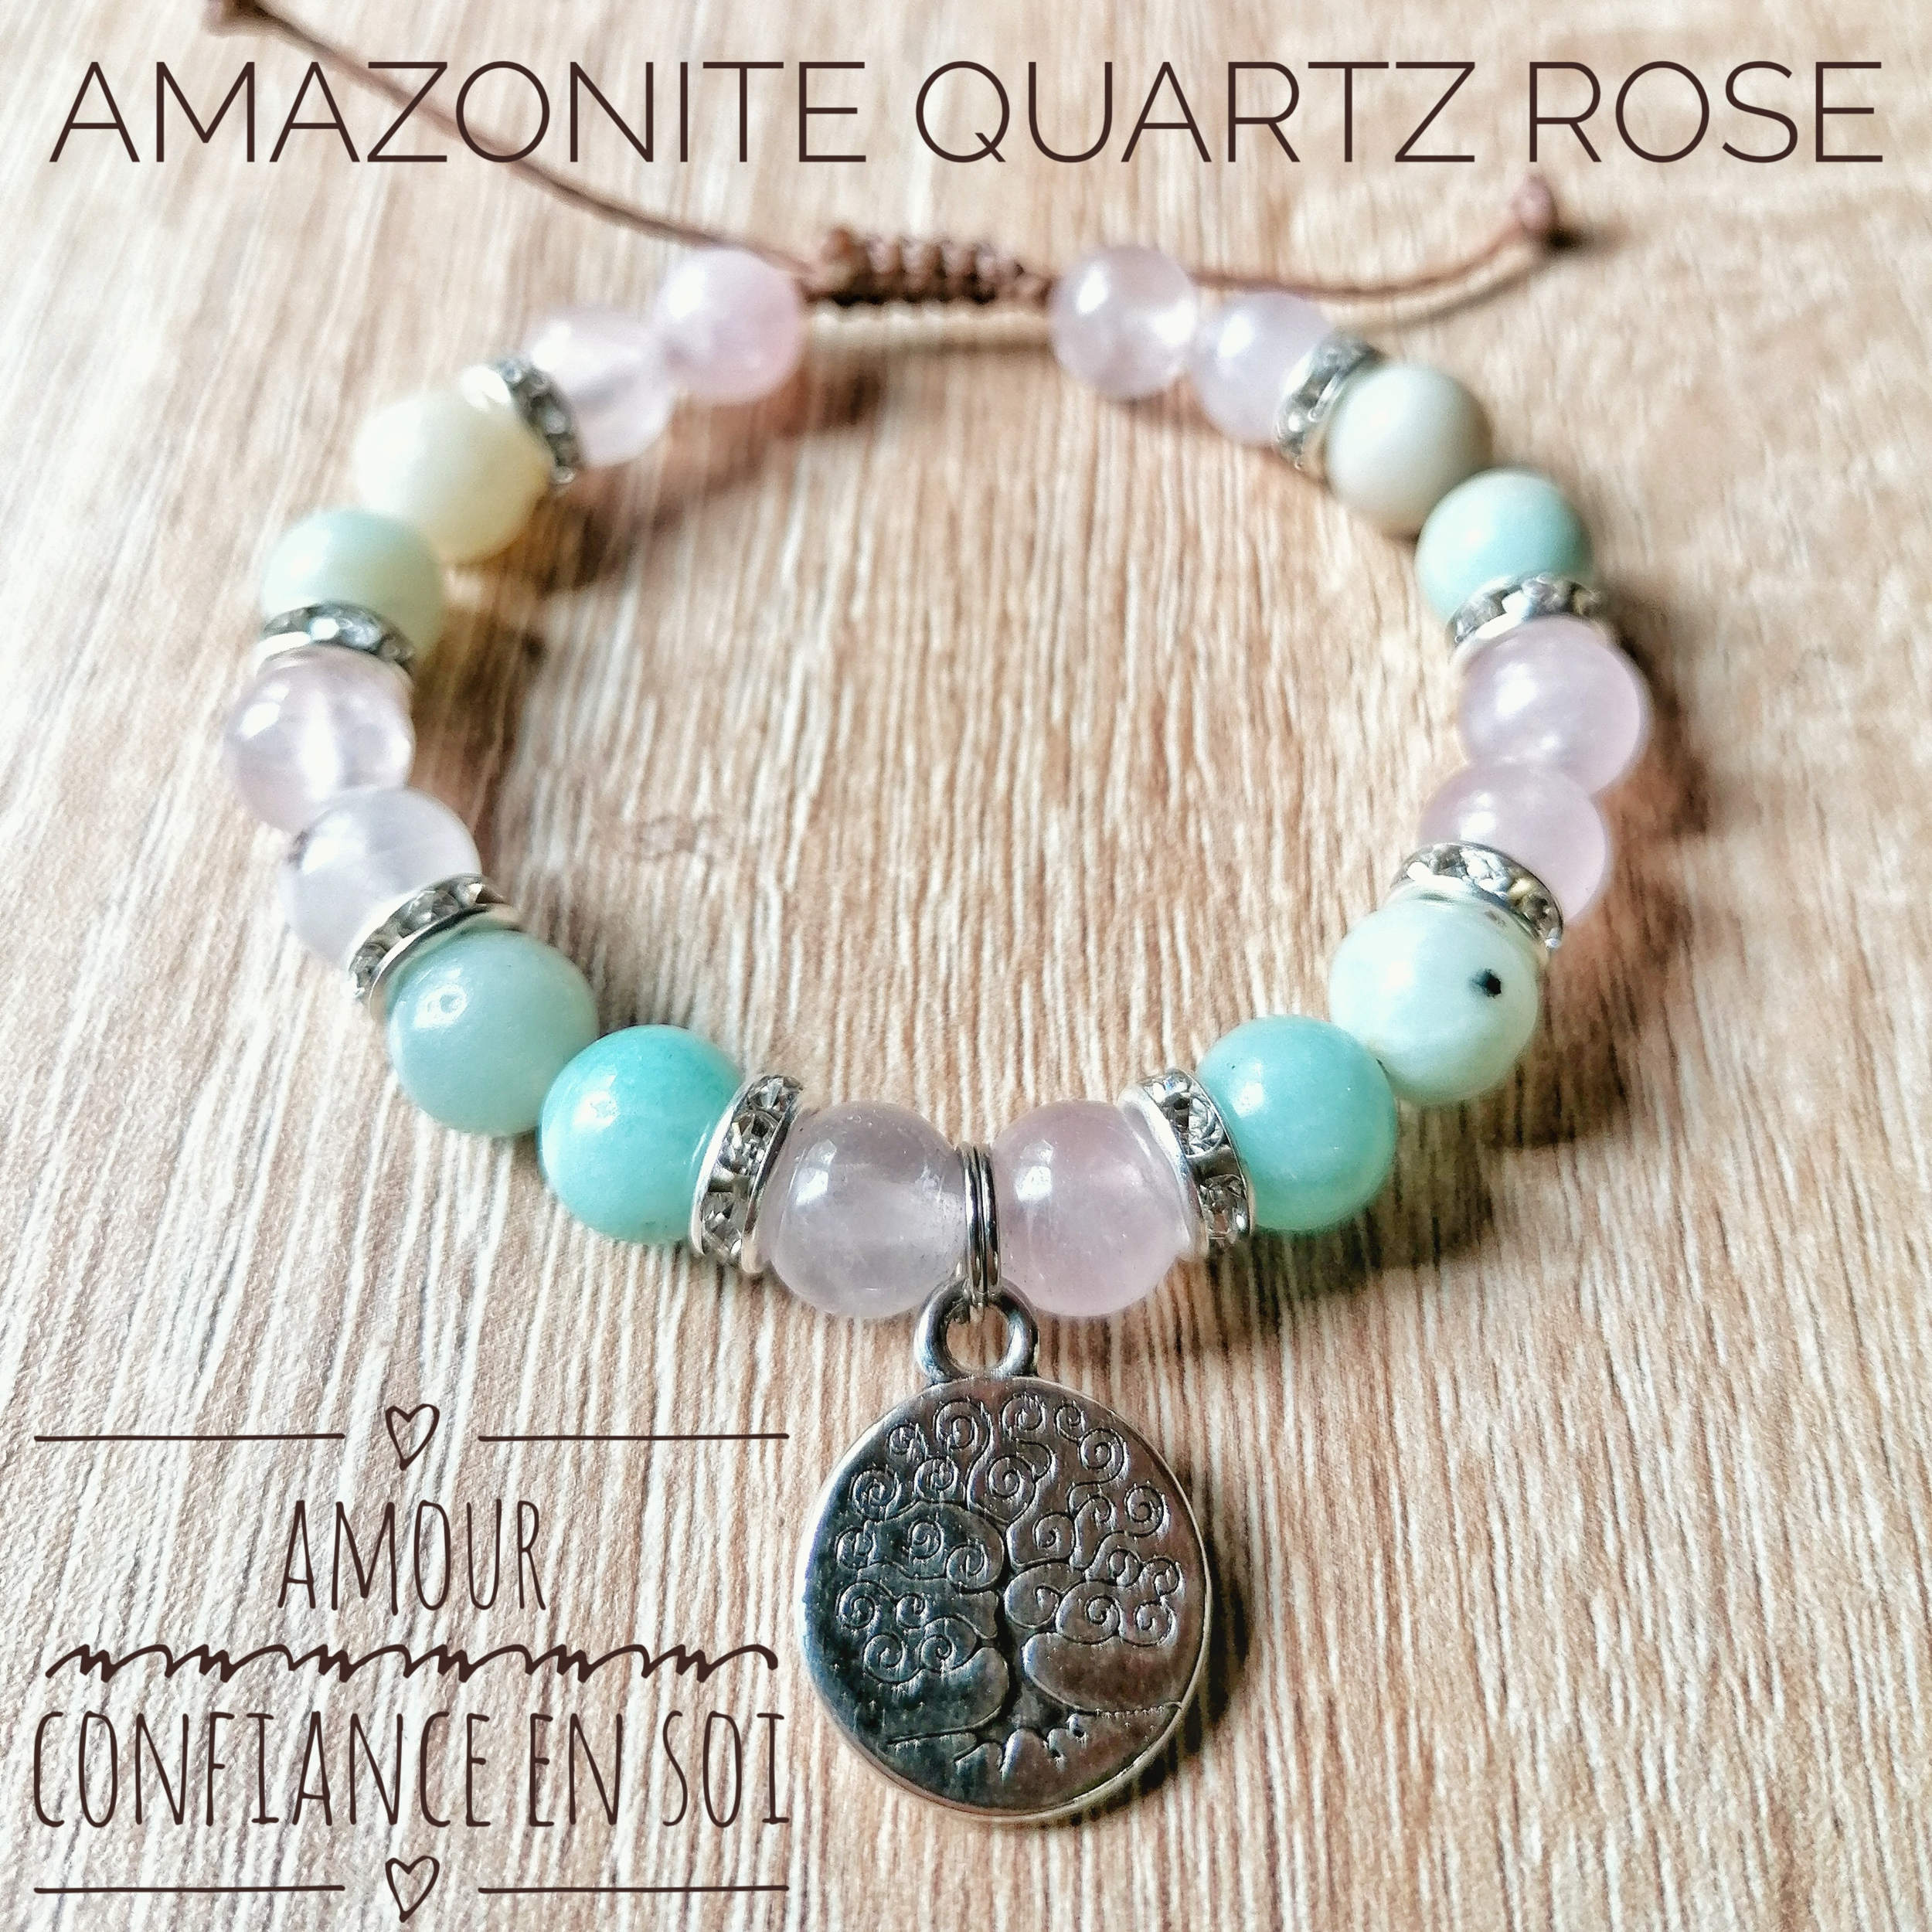 Bracelet Amour & Confiance en soi Quartz rose & Amazonite